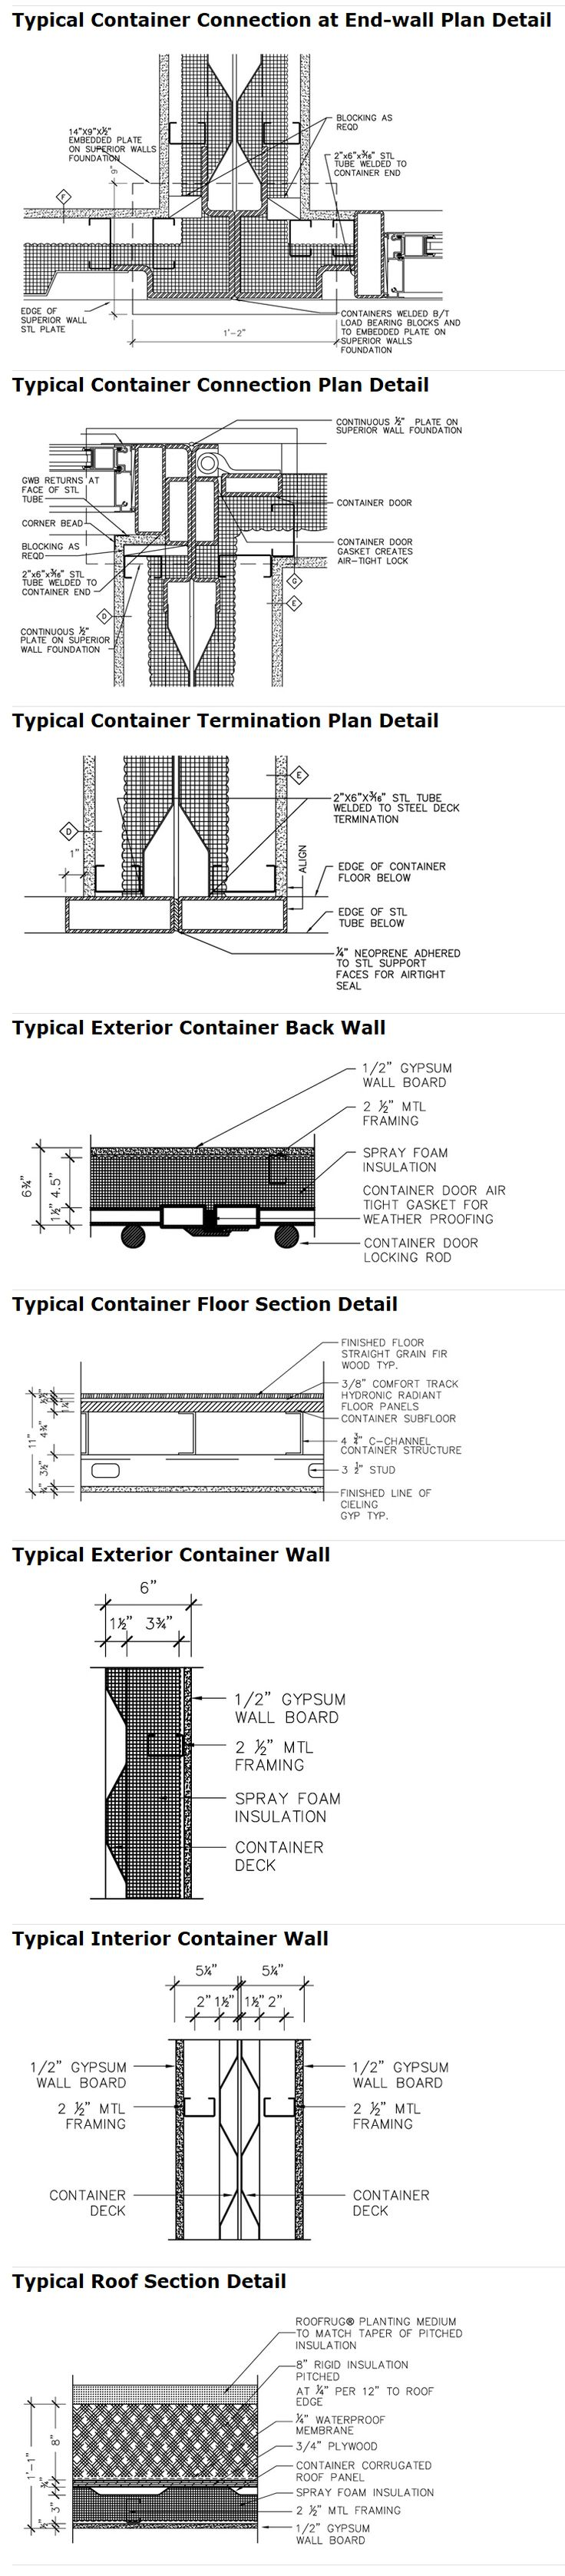 Container House -  Might need this. - Who Else Wants Simple Step-By-Step Plans To Design And Build A Container Home From Scratch?